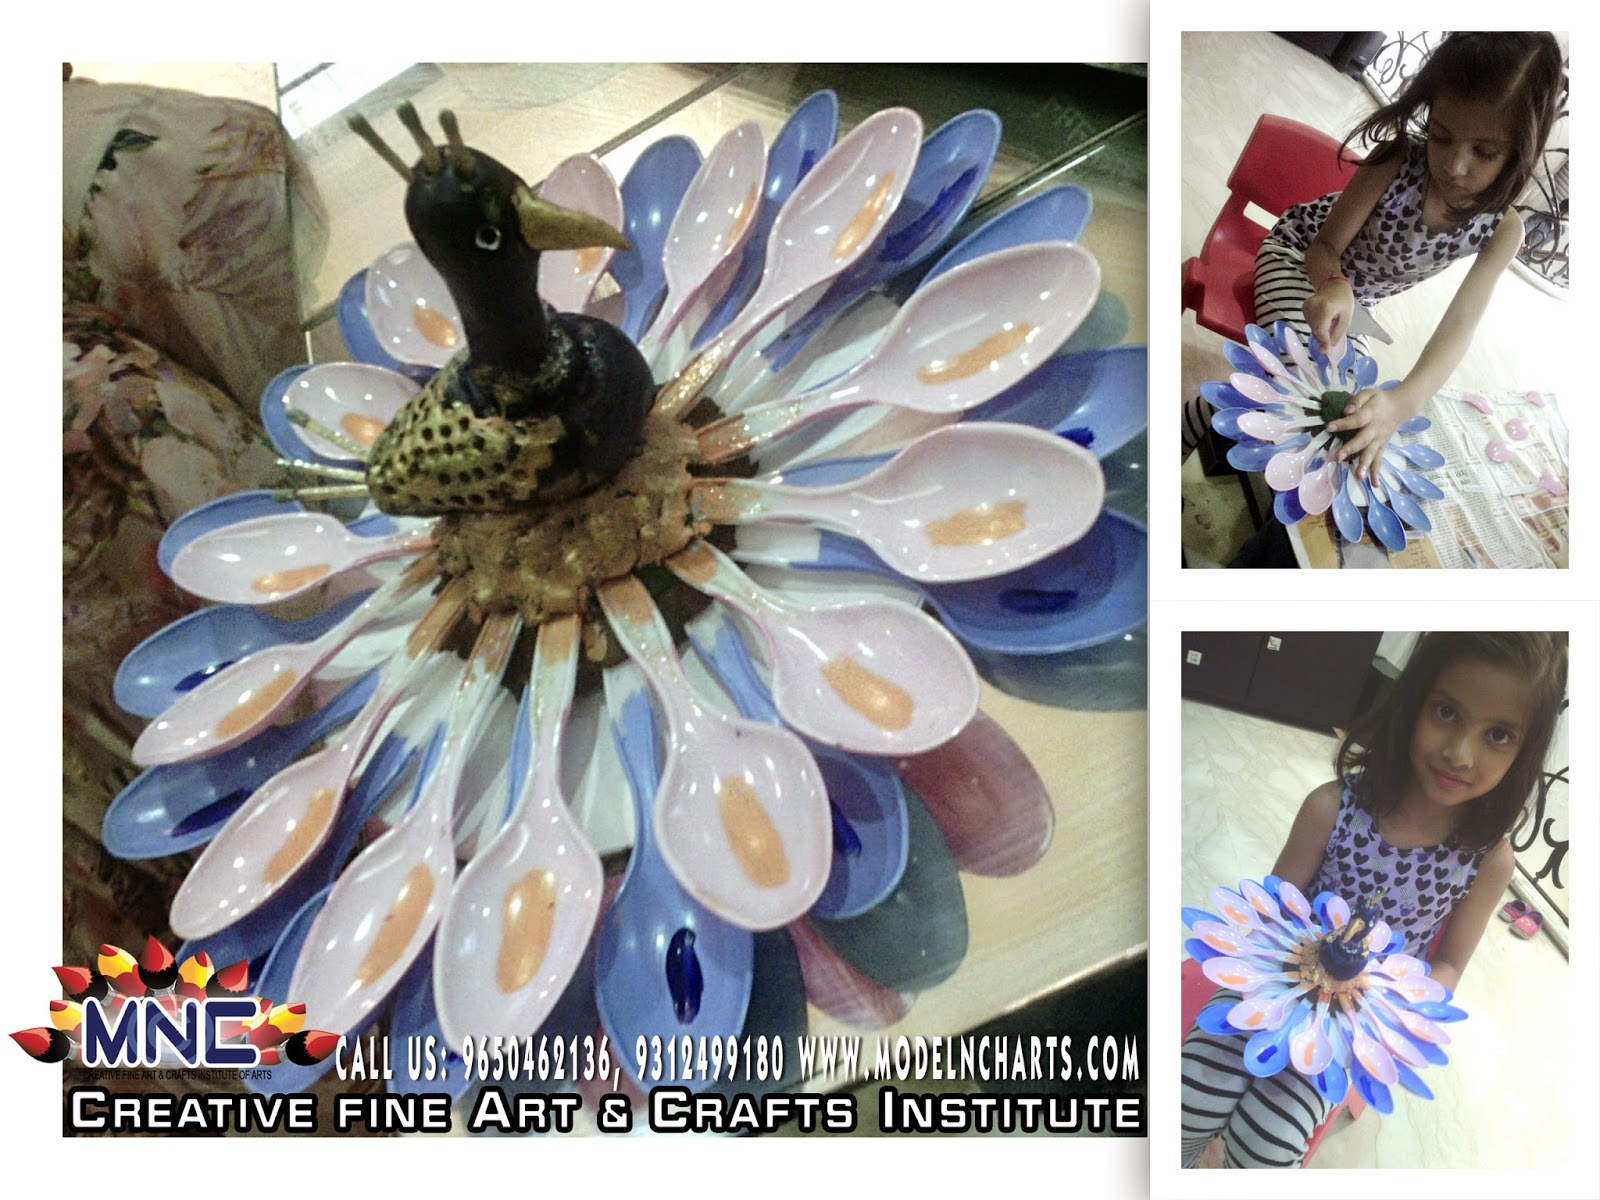 Creative fine art crafts institute 9650462136 home for Art and craft for kids from waste material